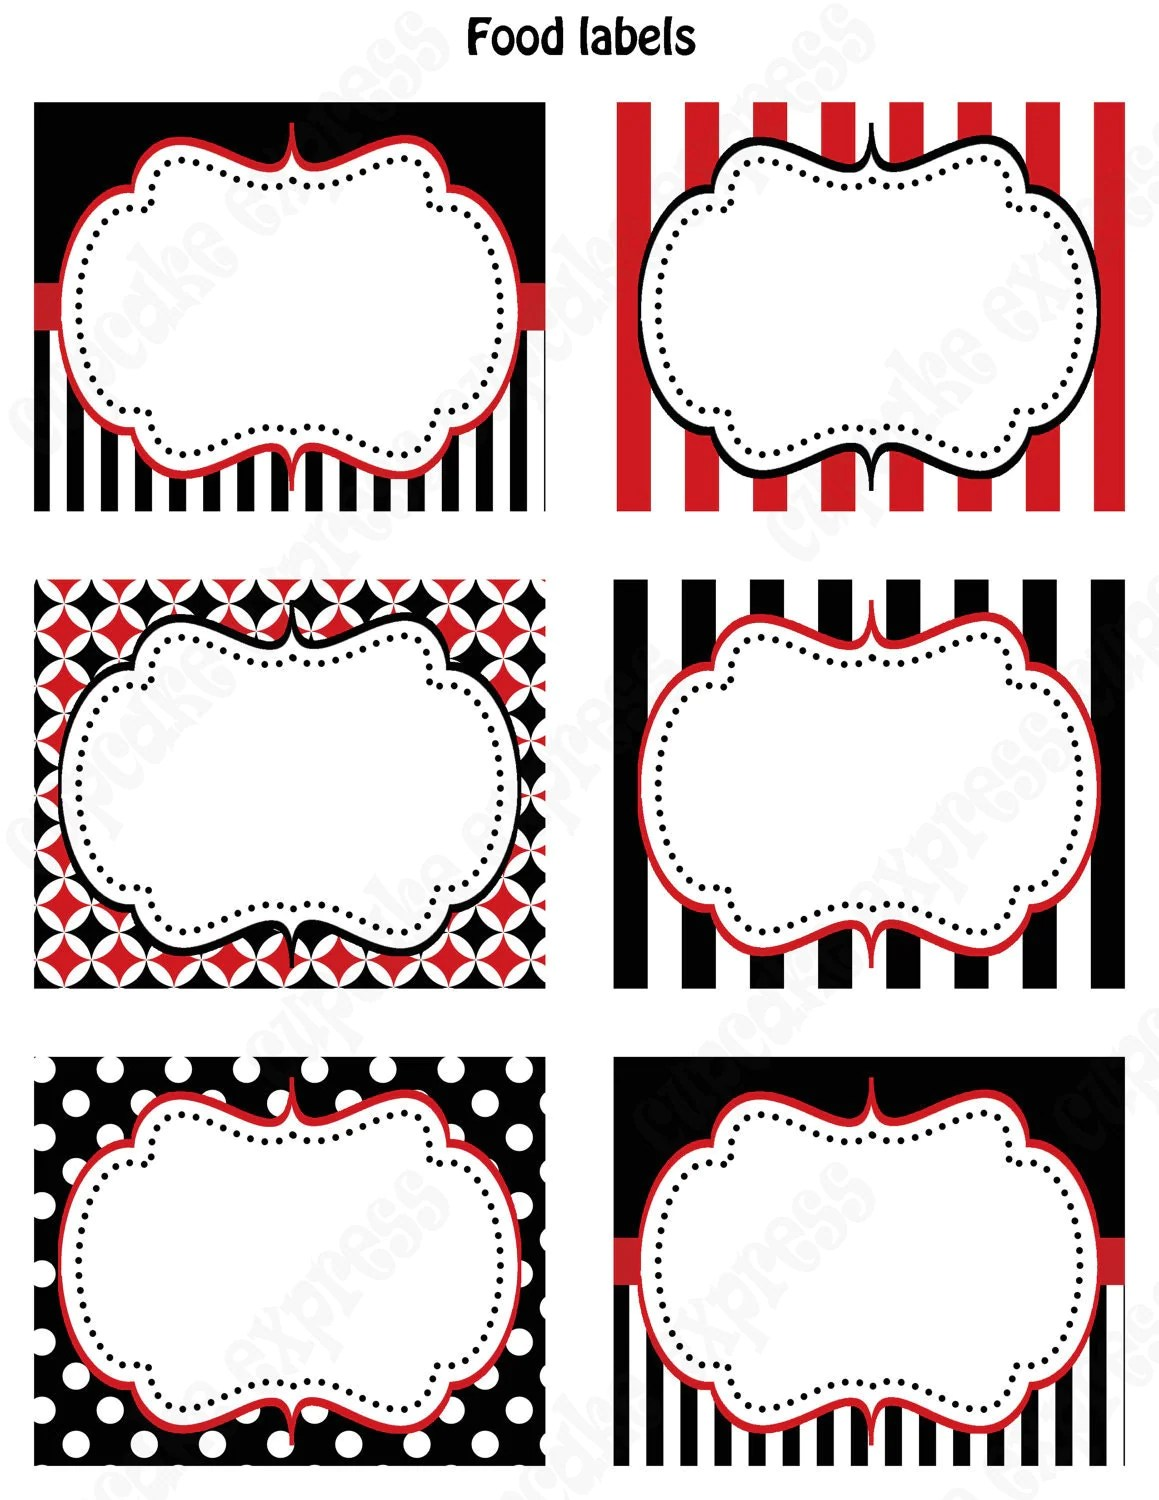 Pirate Birthday Party Printable Food Labels Favor Tags Red